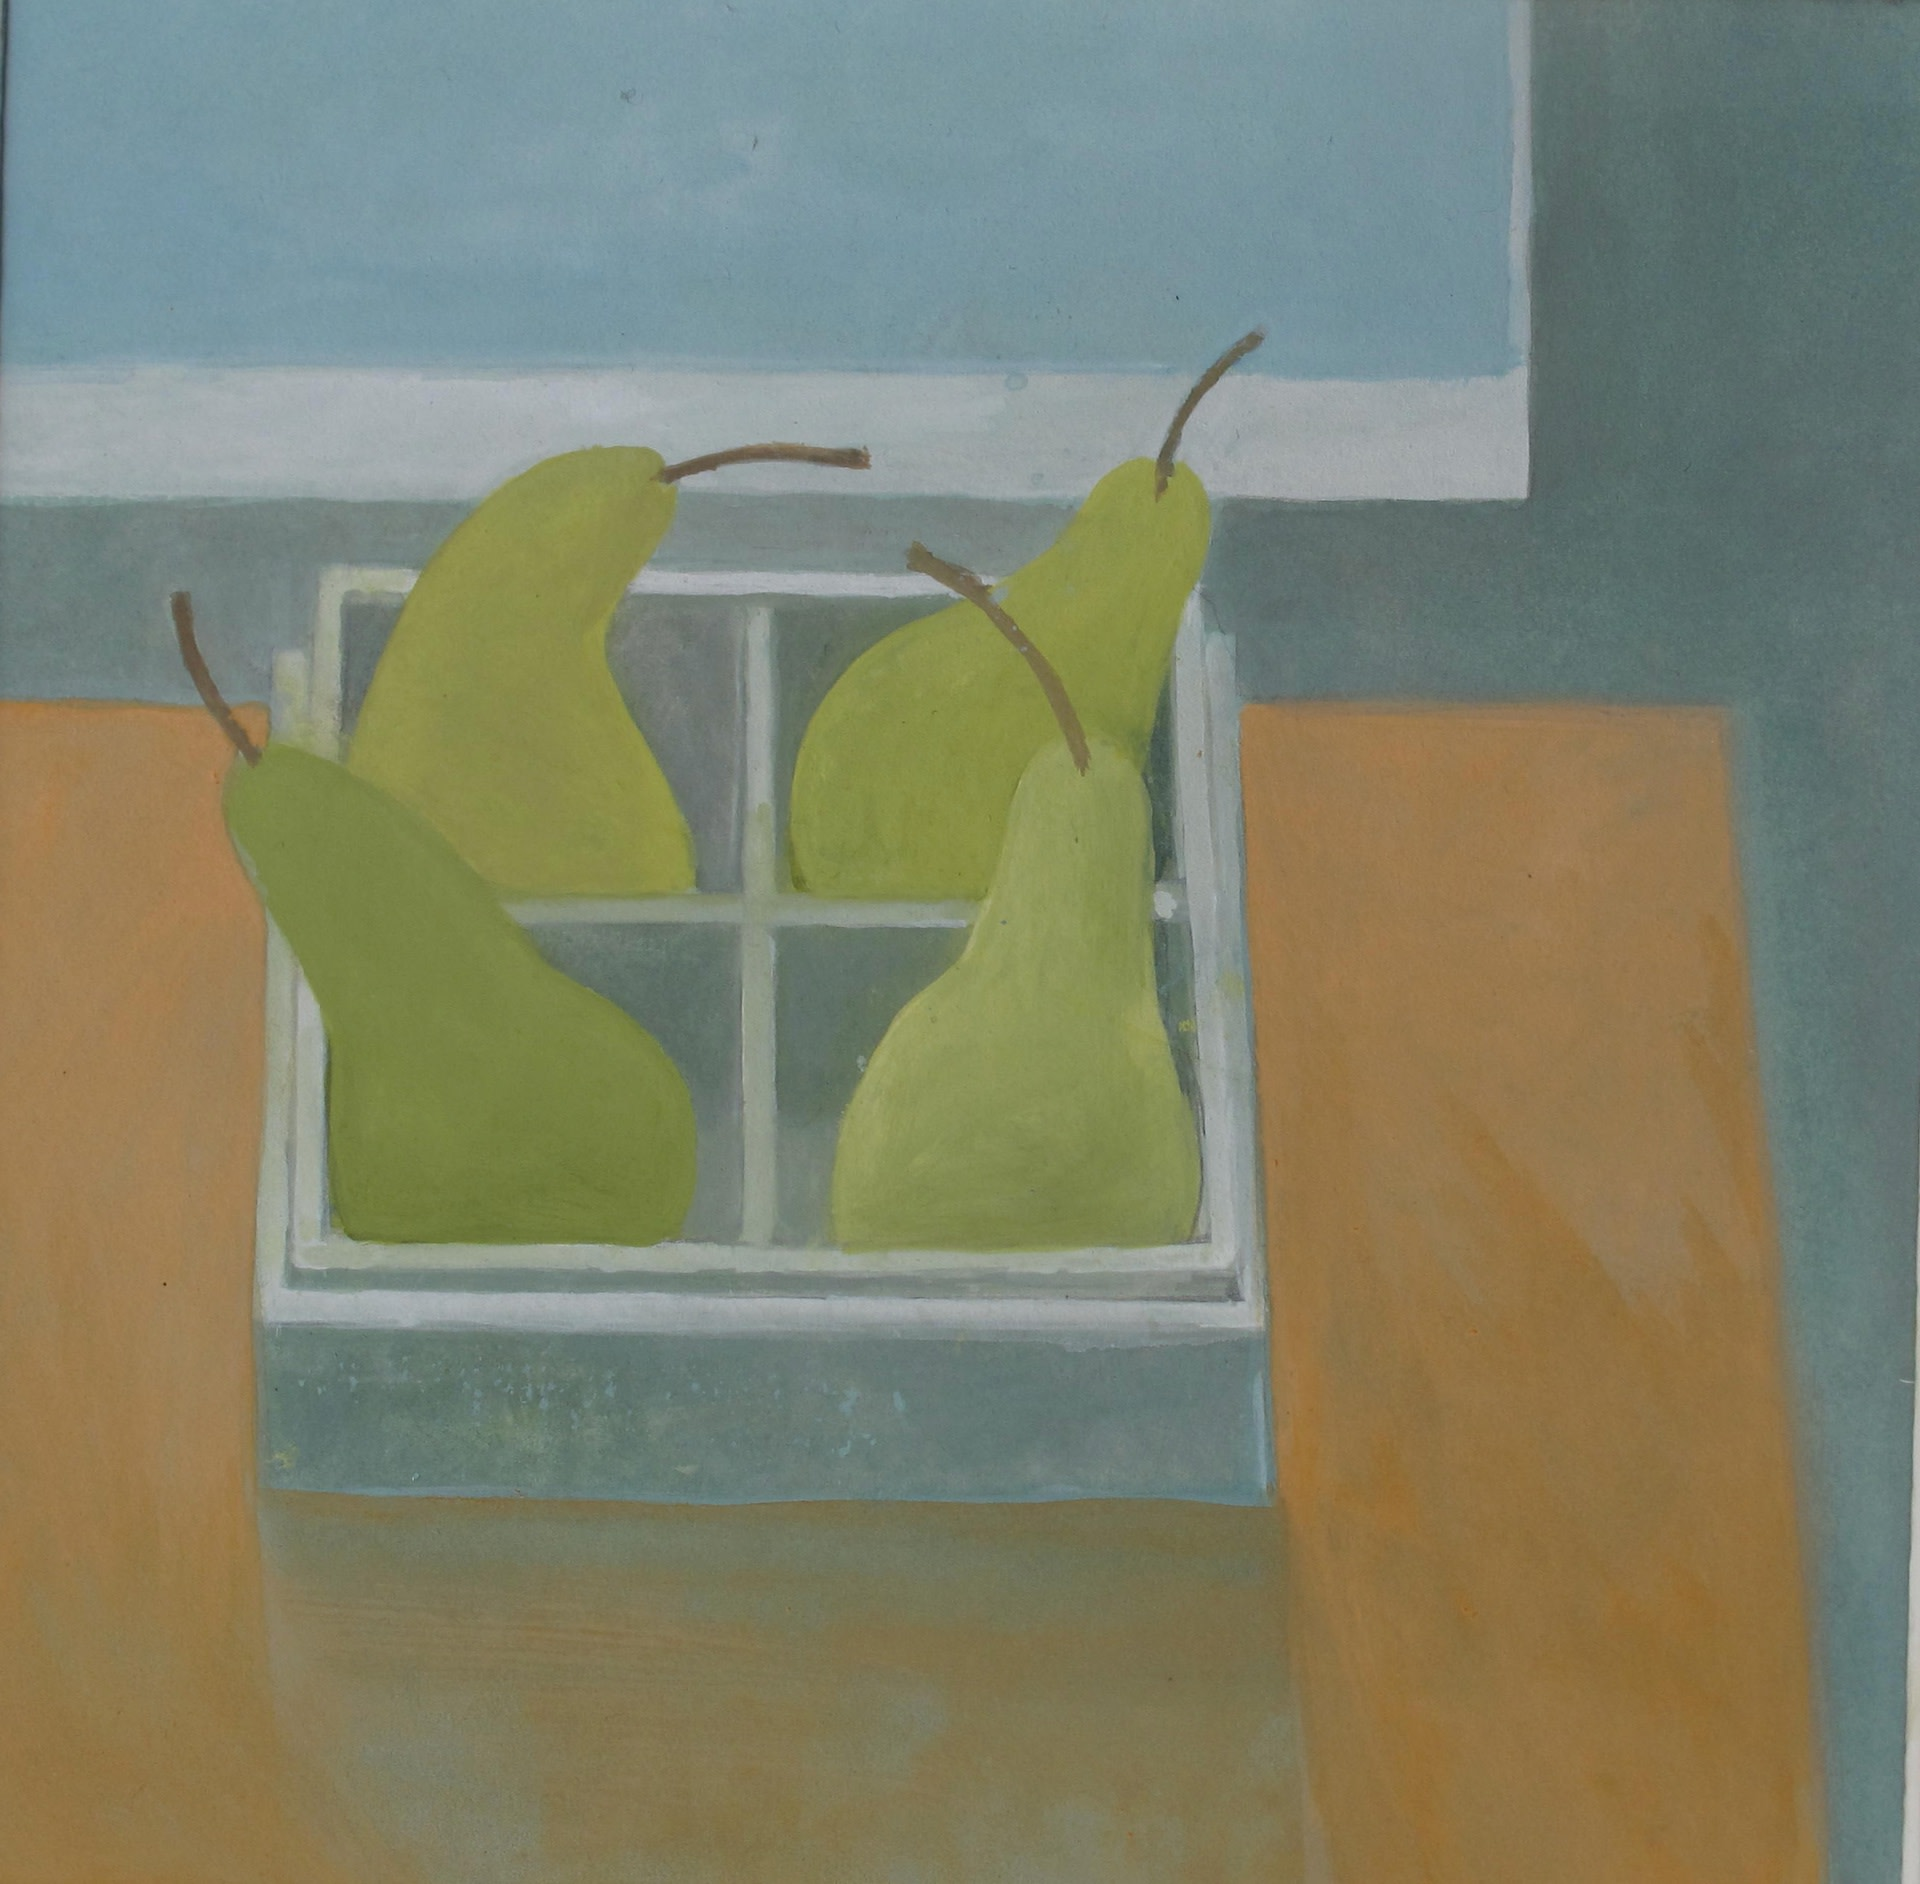 """<span class=""""link fancybox-details-link""""><a href=""""/artists/74-wendy-jacob/works/12239-wendy-jacob-four-pears-in-a-box/"""">View Detail Page</a></span><div class=""""artist""""><span class=""""artist""""><strong>Wendy Jacob</strong></span></div><div class=""""title""""><em>Four Pears in a Box</em></div><div class=""""medium"""">gouache</div><div class=""""dimensions"""">Frame: 33 x 33 cm<br /> Artwork: 20 x 19 cm</div><div class=""""price"""">£390.00</div>"""